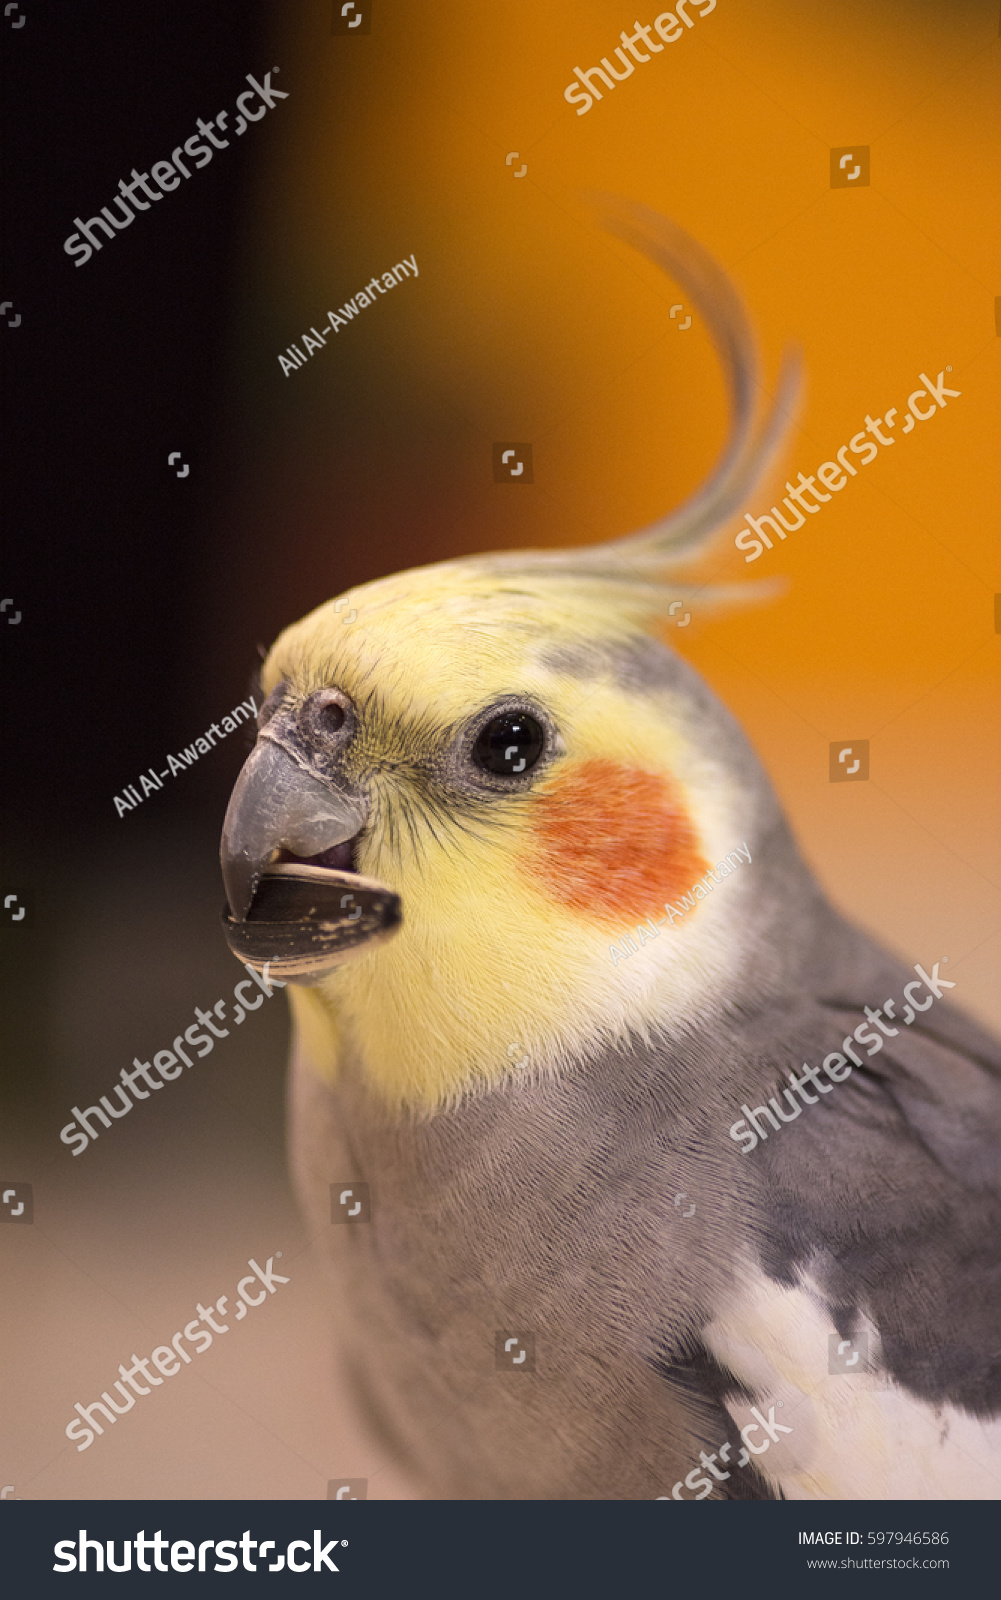 stock-photo-closeup-of-cockatiel-bird-59